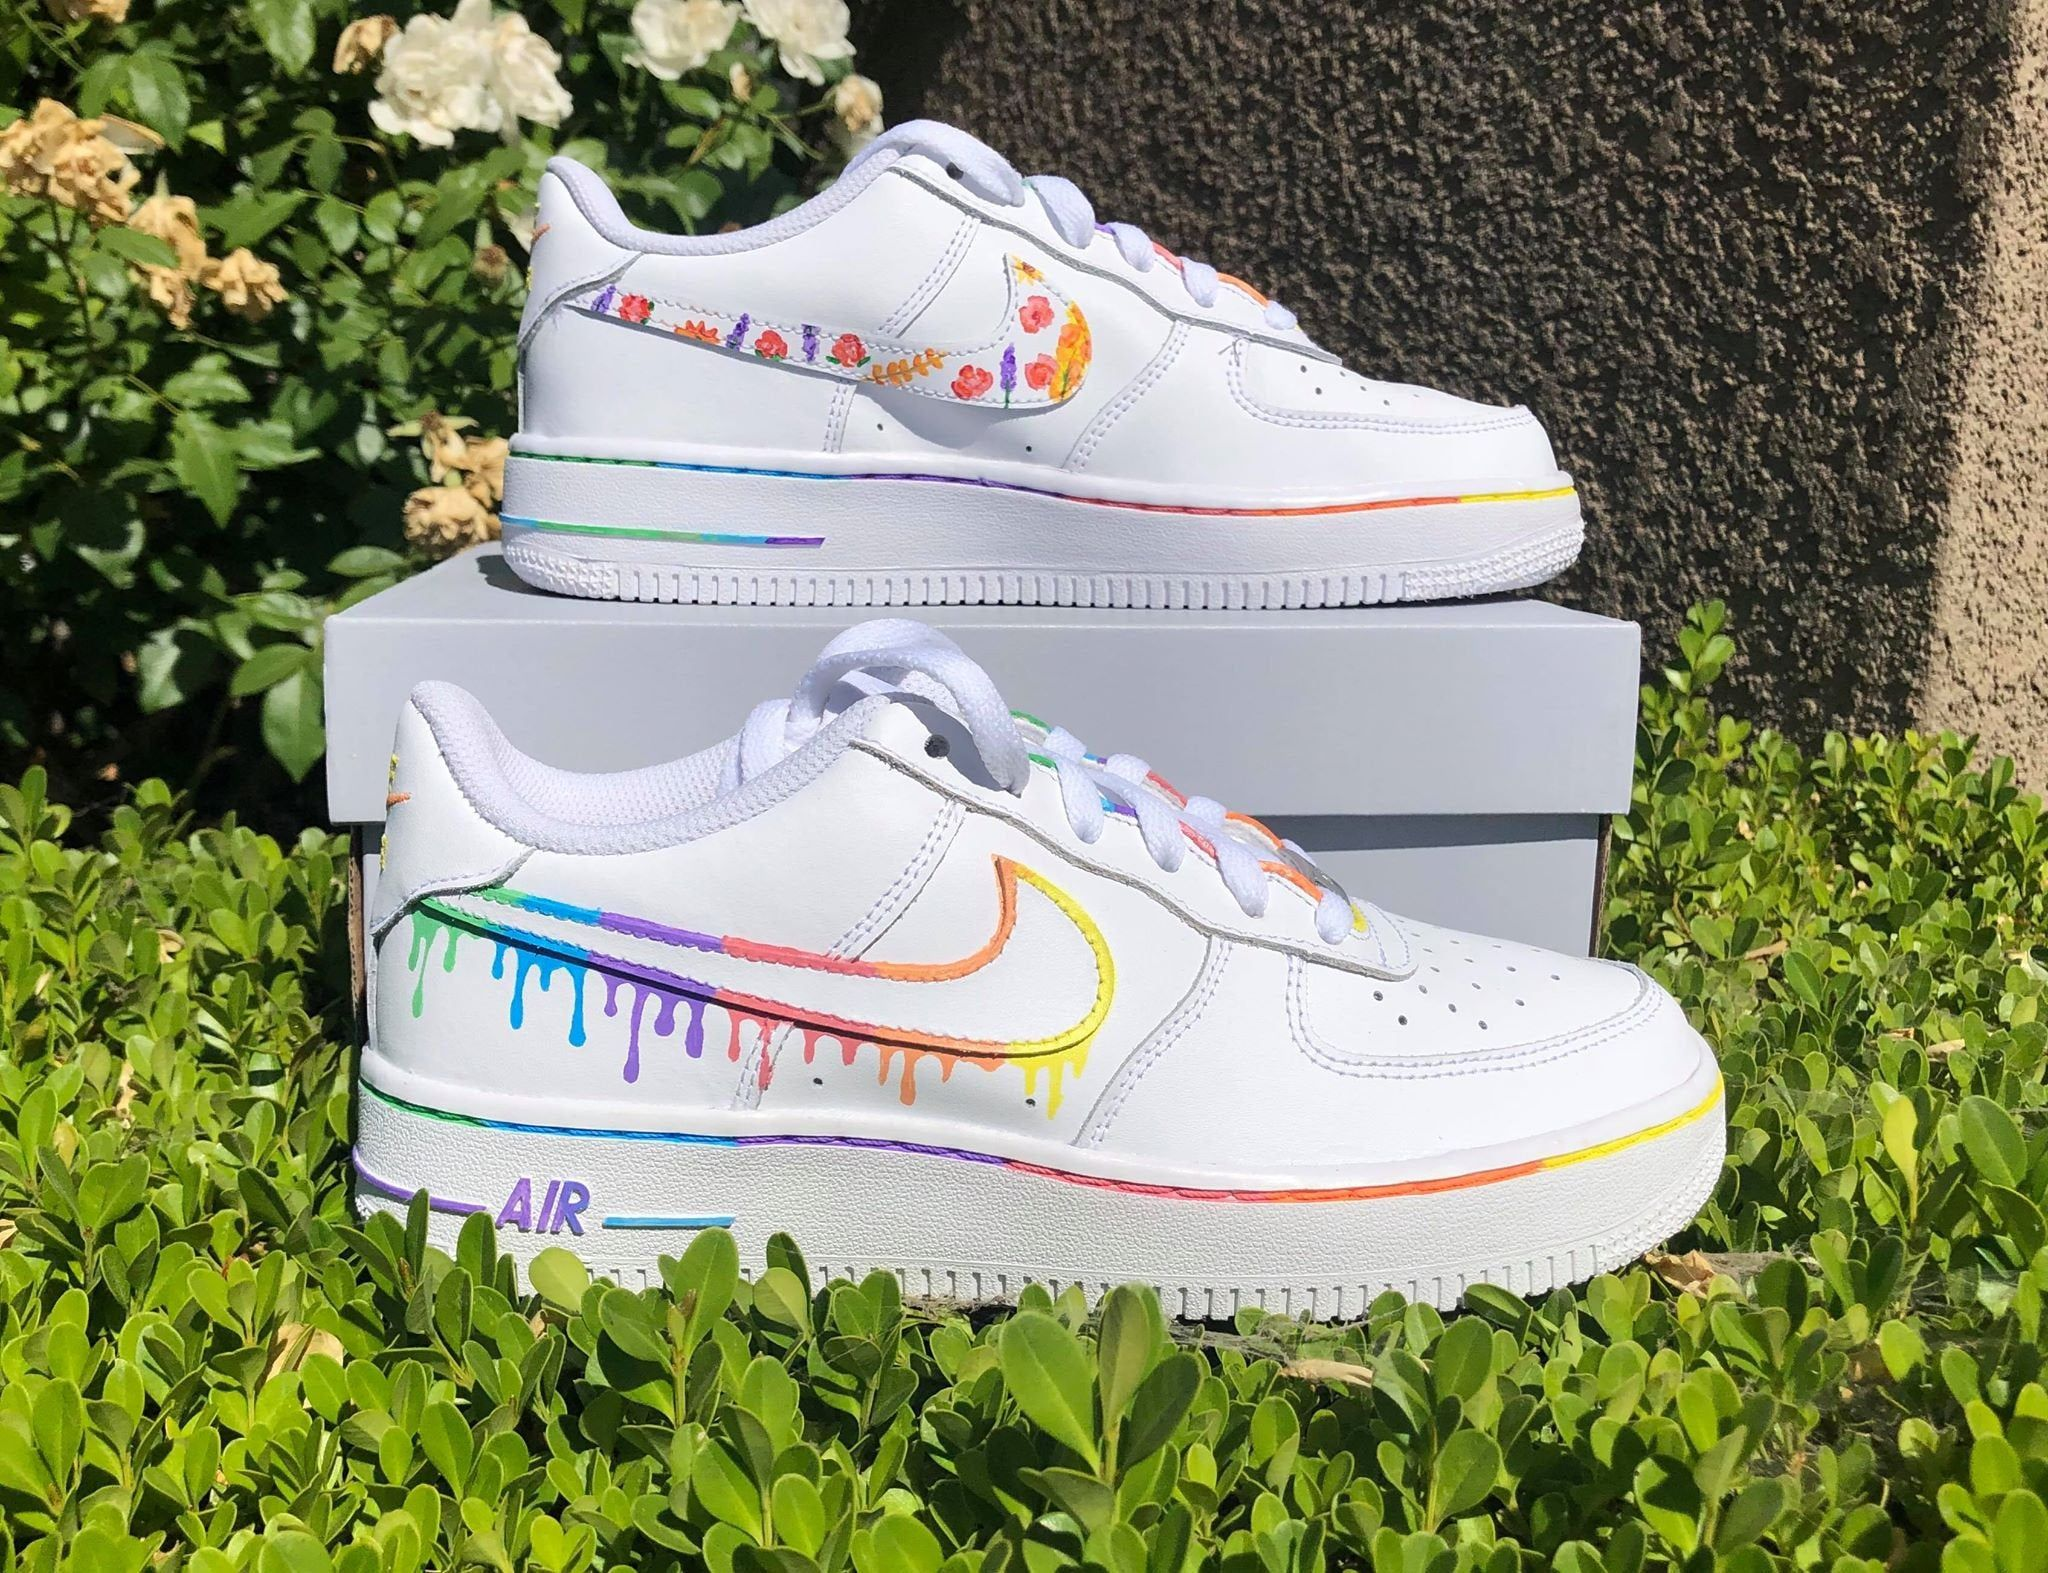 Nike Air Force 1 Rainbow Drip and Floral Pattern Etsy in